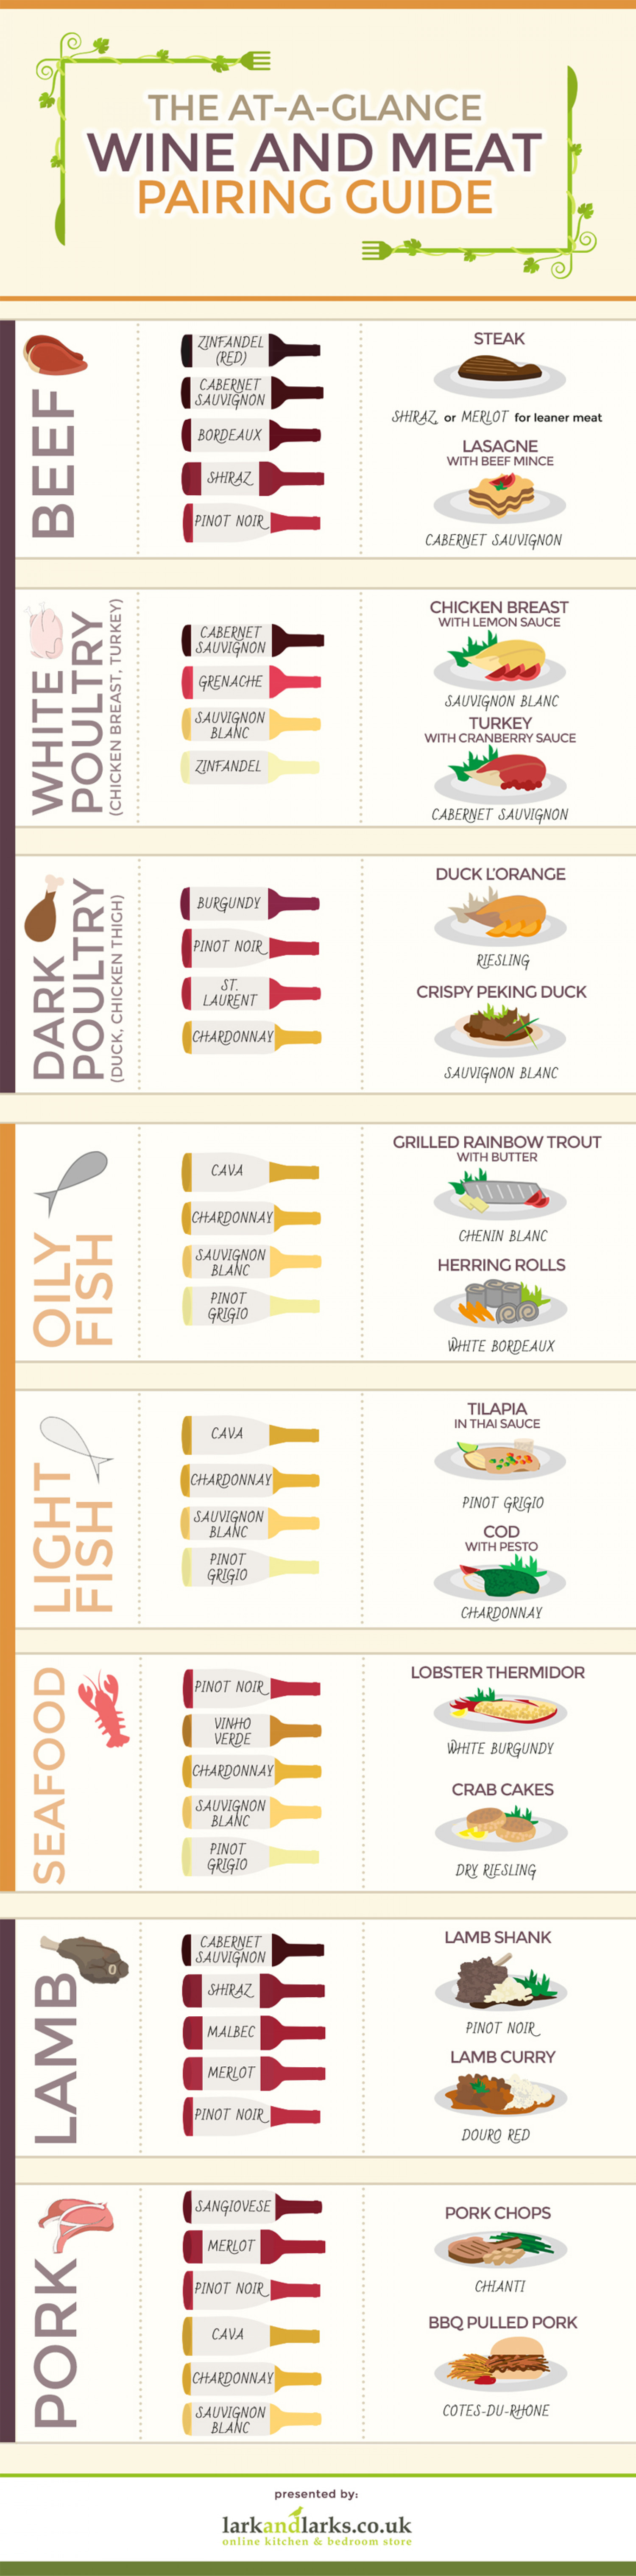 The At-A-Glance Wine & Meat Pairing Guide Infographic